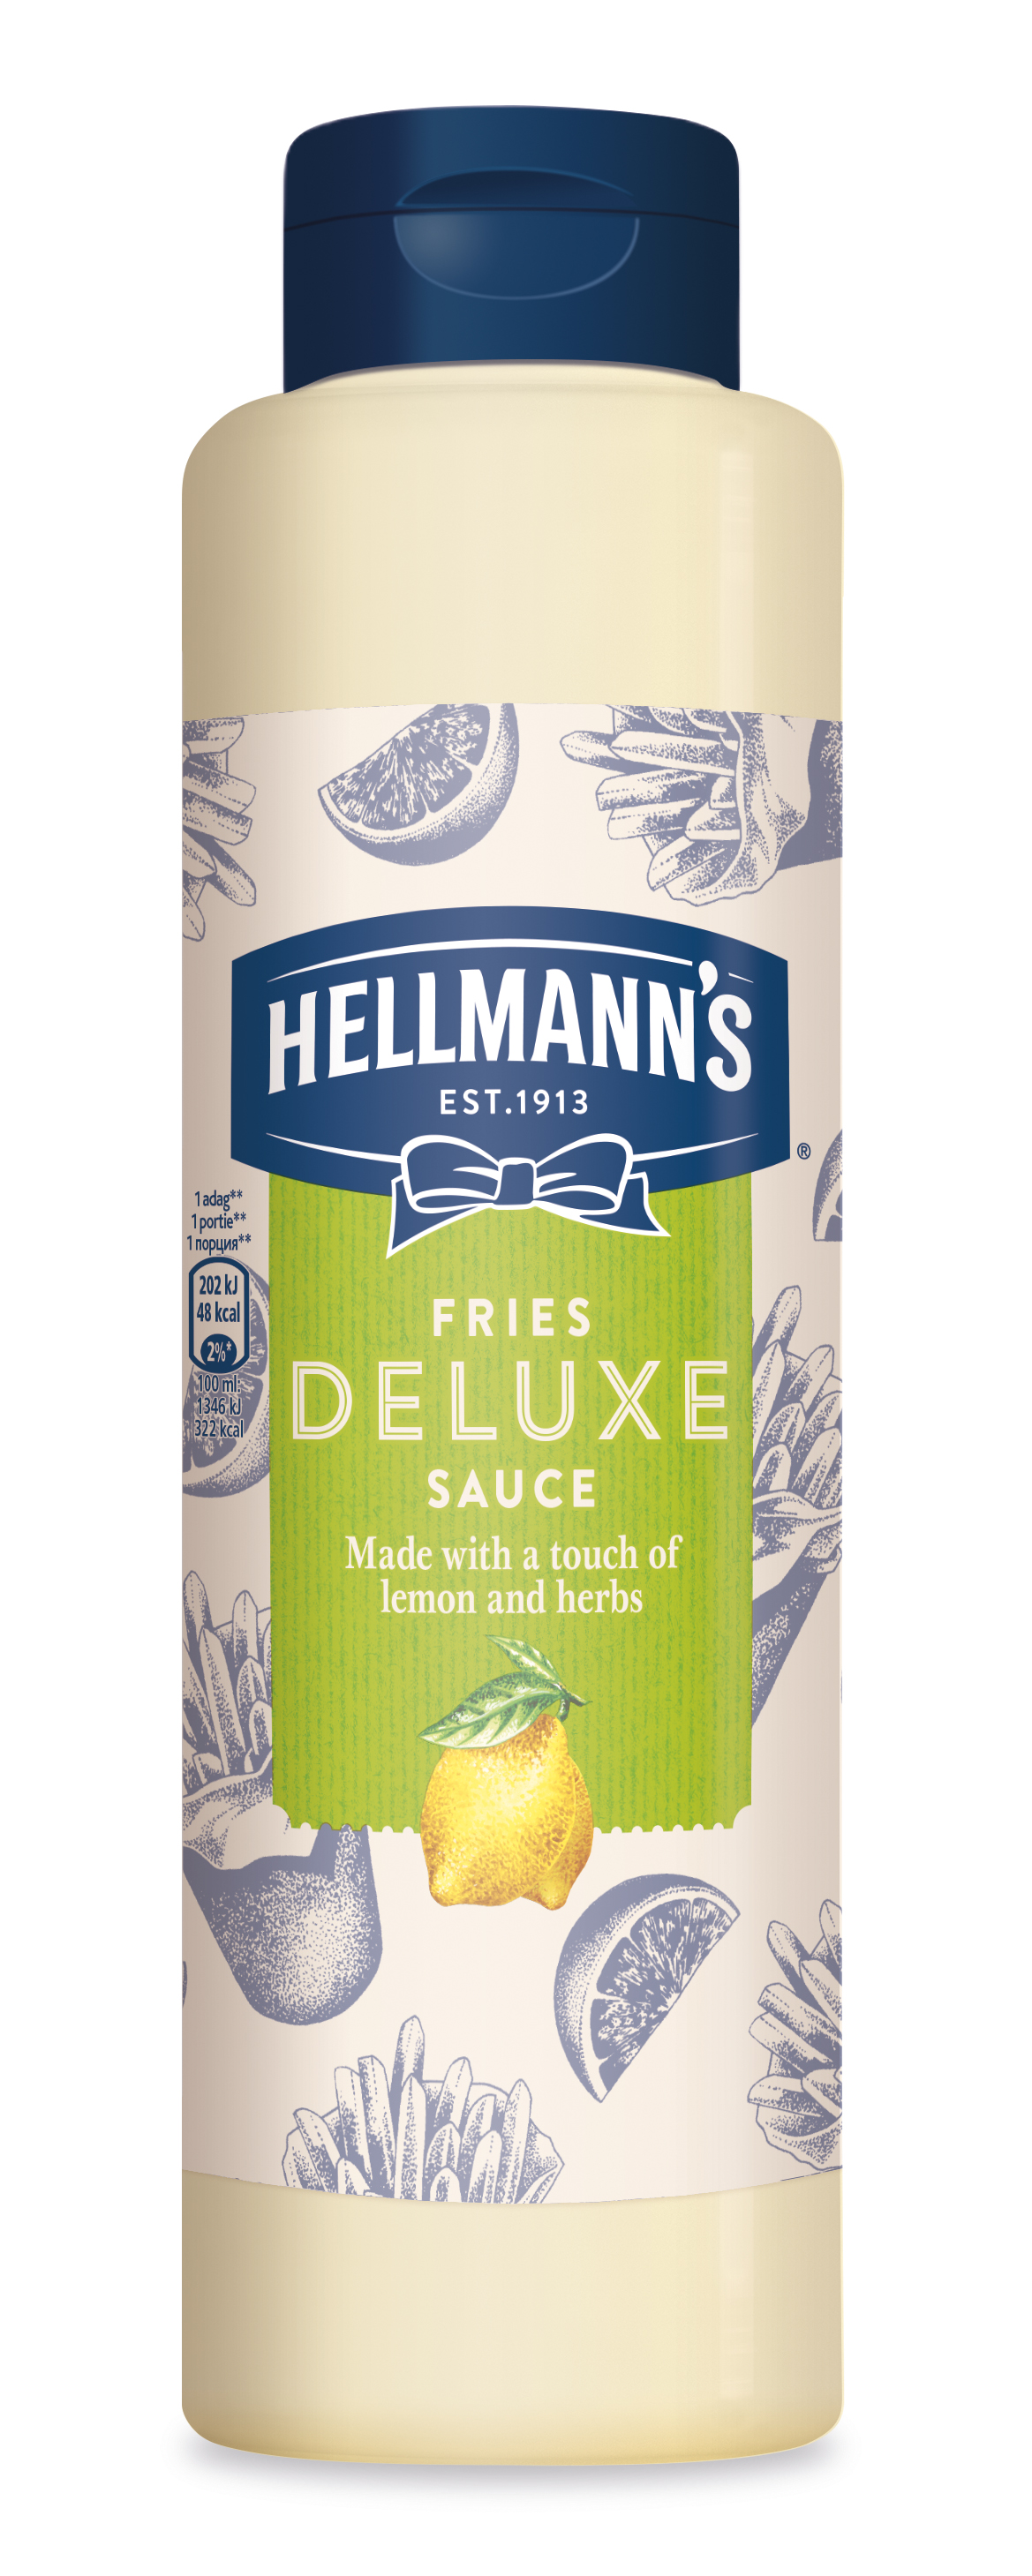 Hellmann's Fries Deluxe preliv z limono in zelišči 850 ml